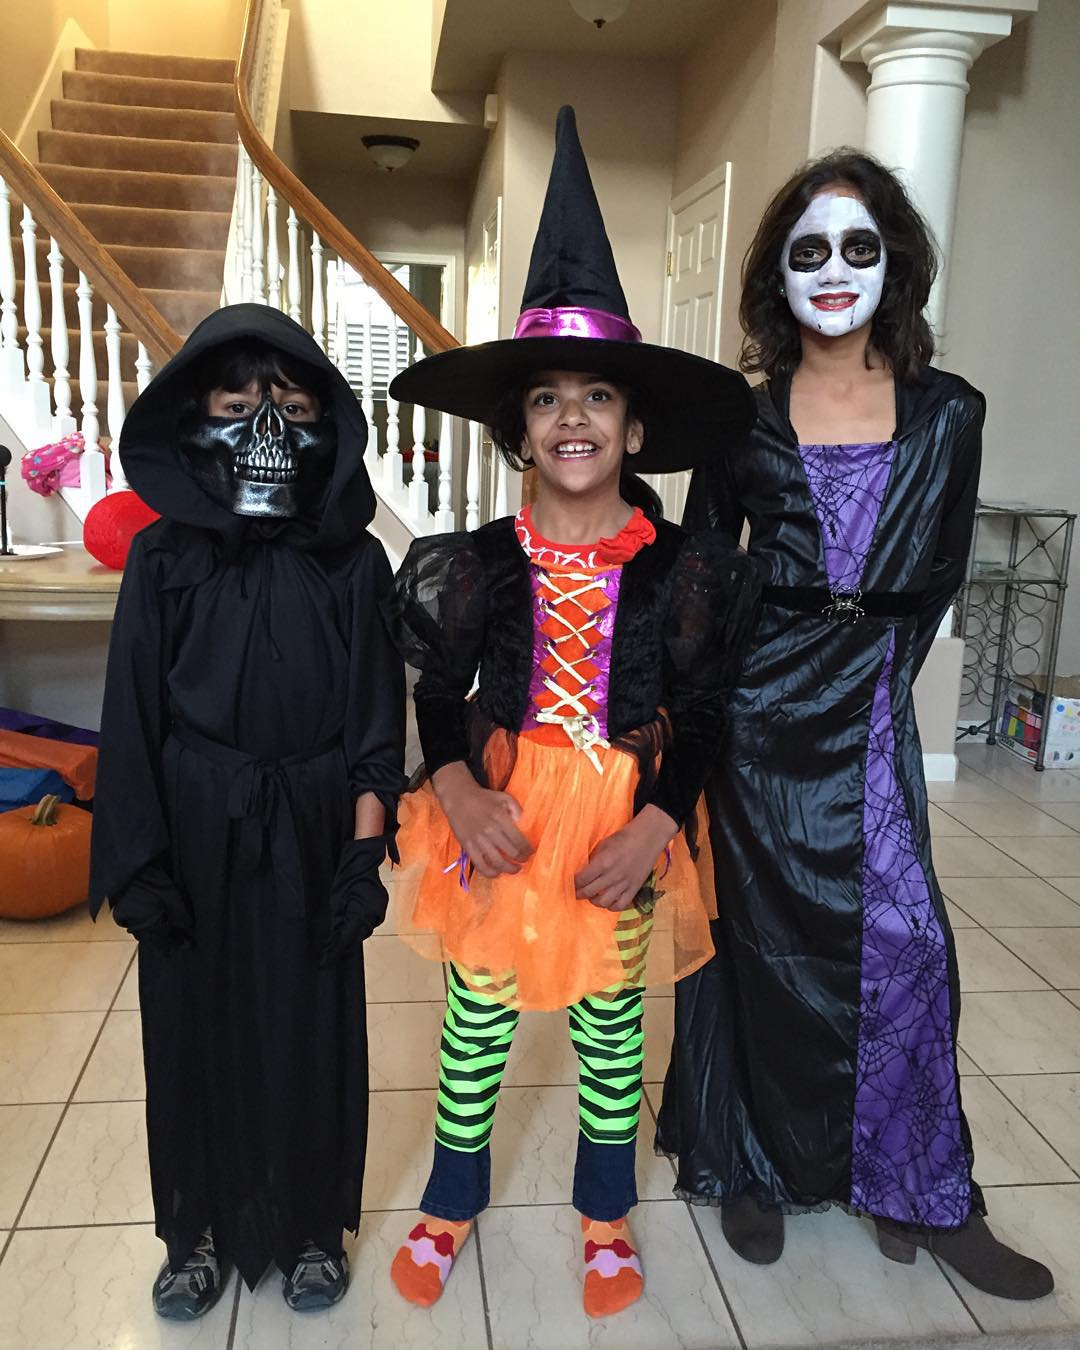 "<div class=""meta image-caption""><div class=""origin-logo origin-image none""><span>none</span></div><span class=""caption-text"">Sandhya Patel shared this adorable pic of her ghoulish bunch before their school parade. Share your Halloween photos on social media using #SpookyOn7! (KGO-TV)</span></div>"